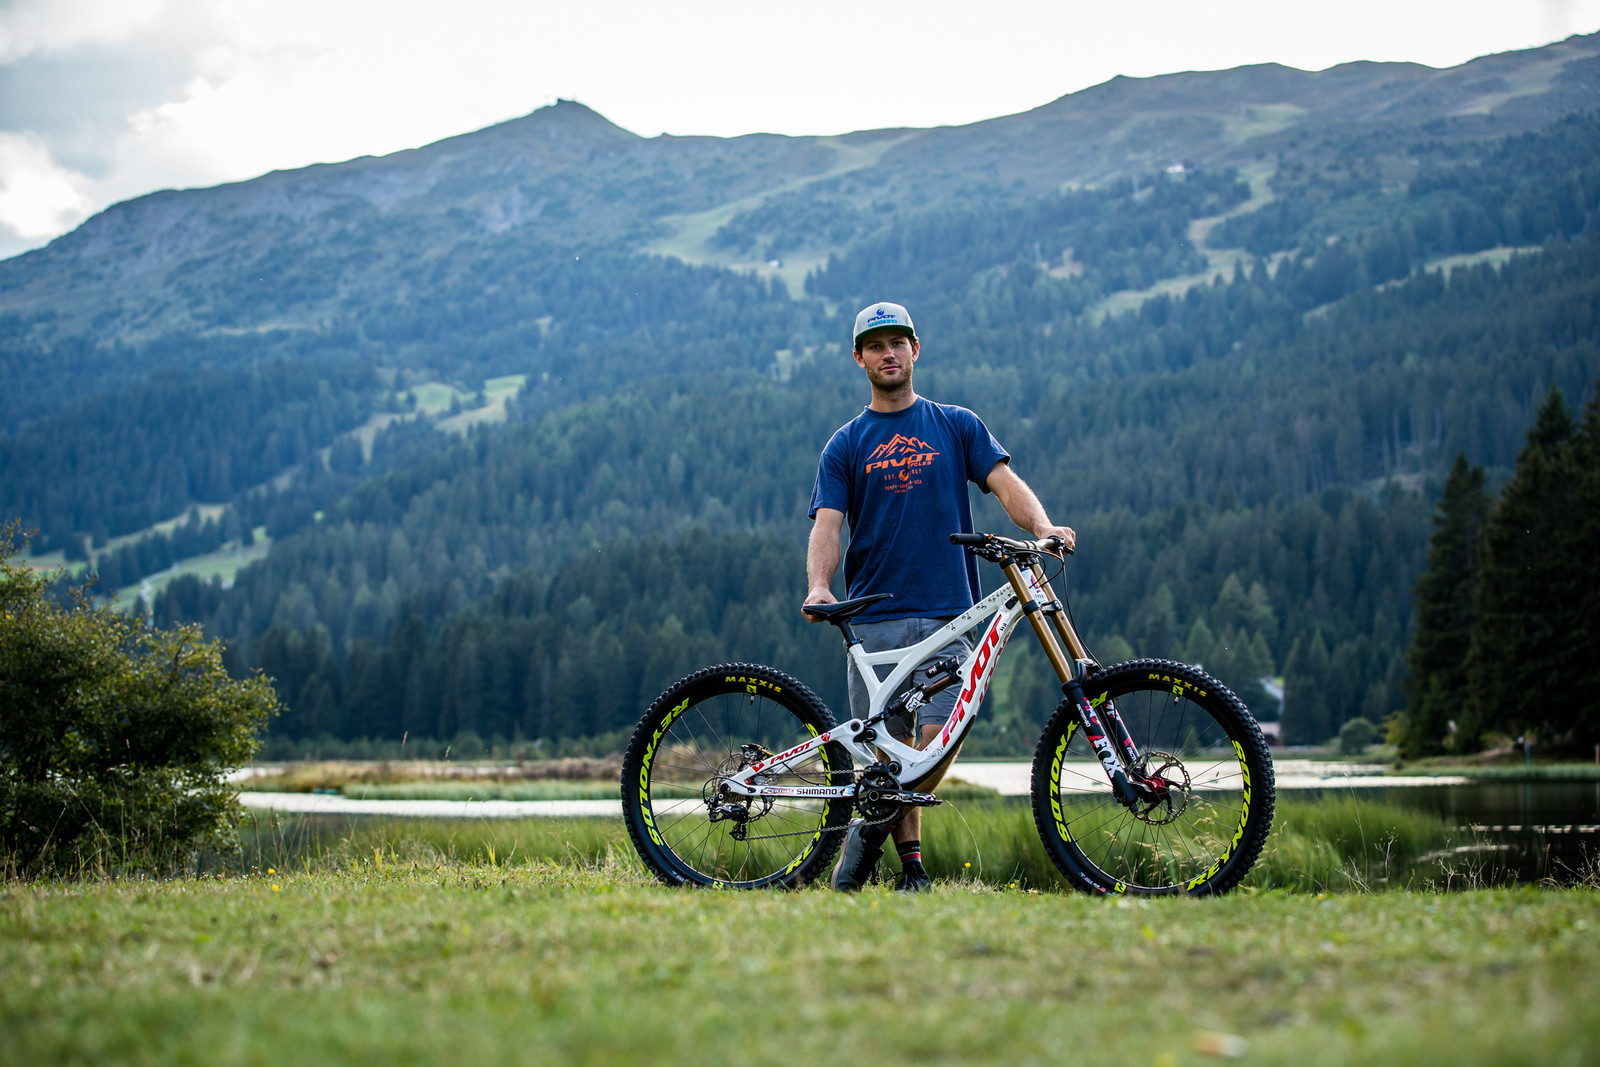 The Man Behind the Build - WORLD CHAMPS BIKE - Emilie Siegenthaler's Pivot Phoenix - Mountain Biking Pictures - Vital MTB